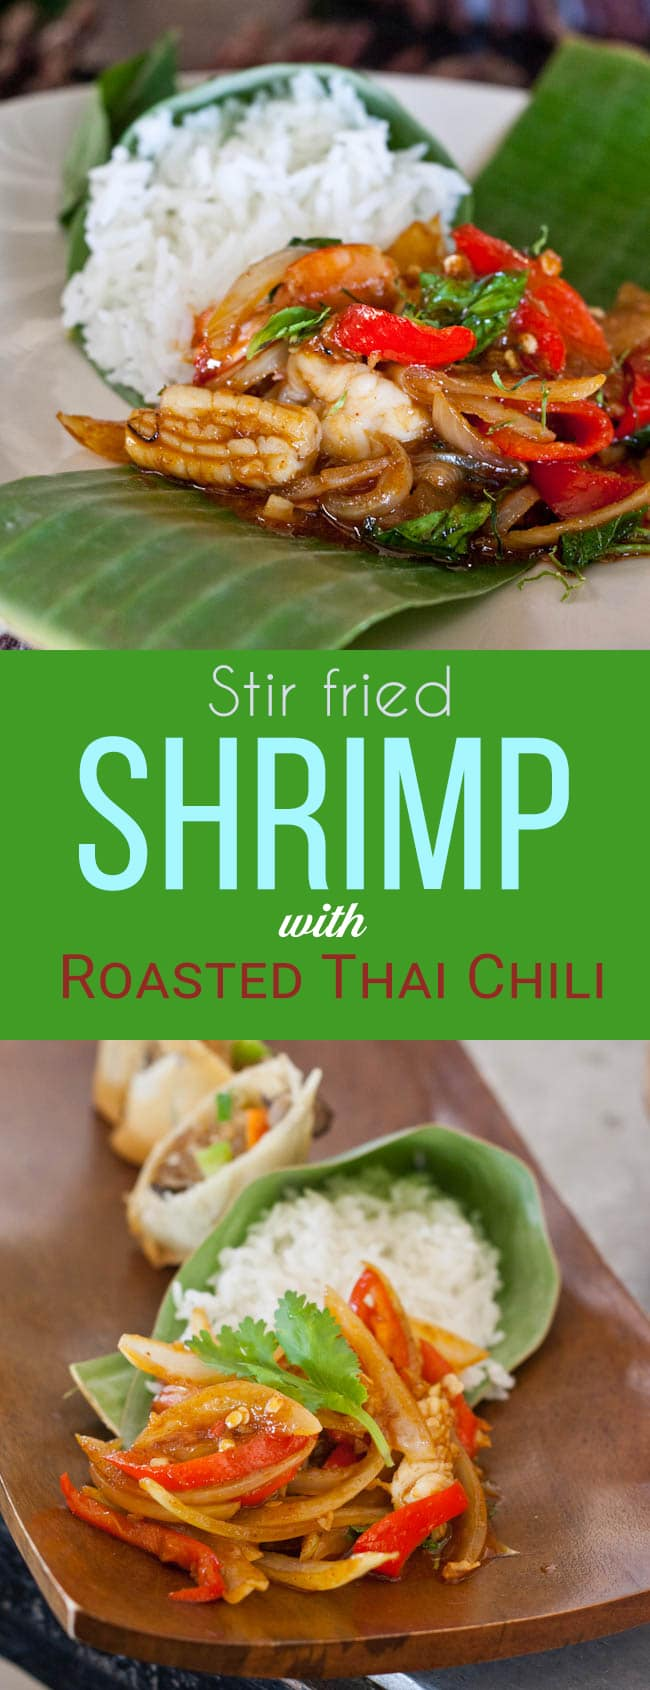 Shrimp stir fry recipe comes together in 30 minutes and is going to be your new favorite seafood packed dinner. The magic is created by the roasted Thai chili paste. An incredible sauce that smells like caramelized shallots and tastes even better. A gluten Free and Dairy free dinner.